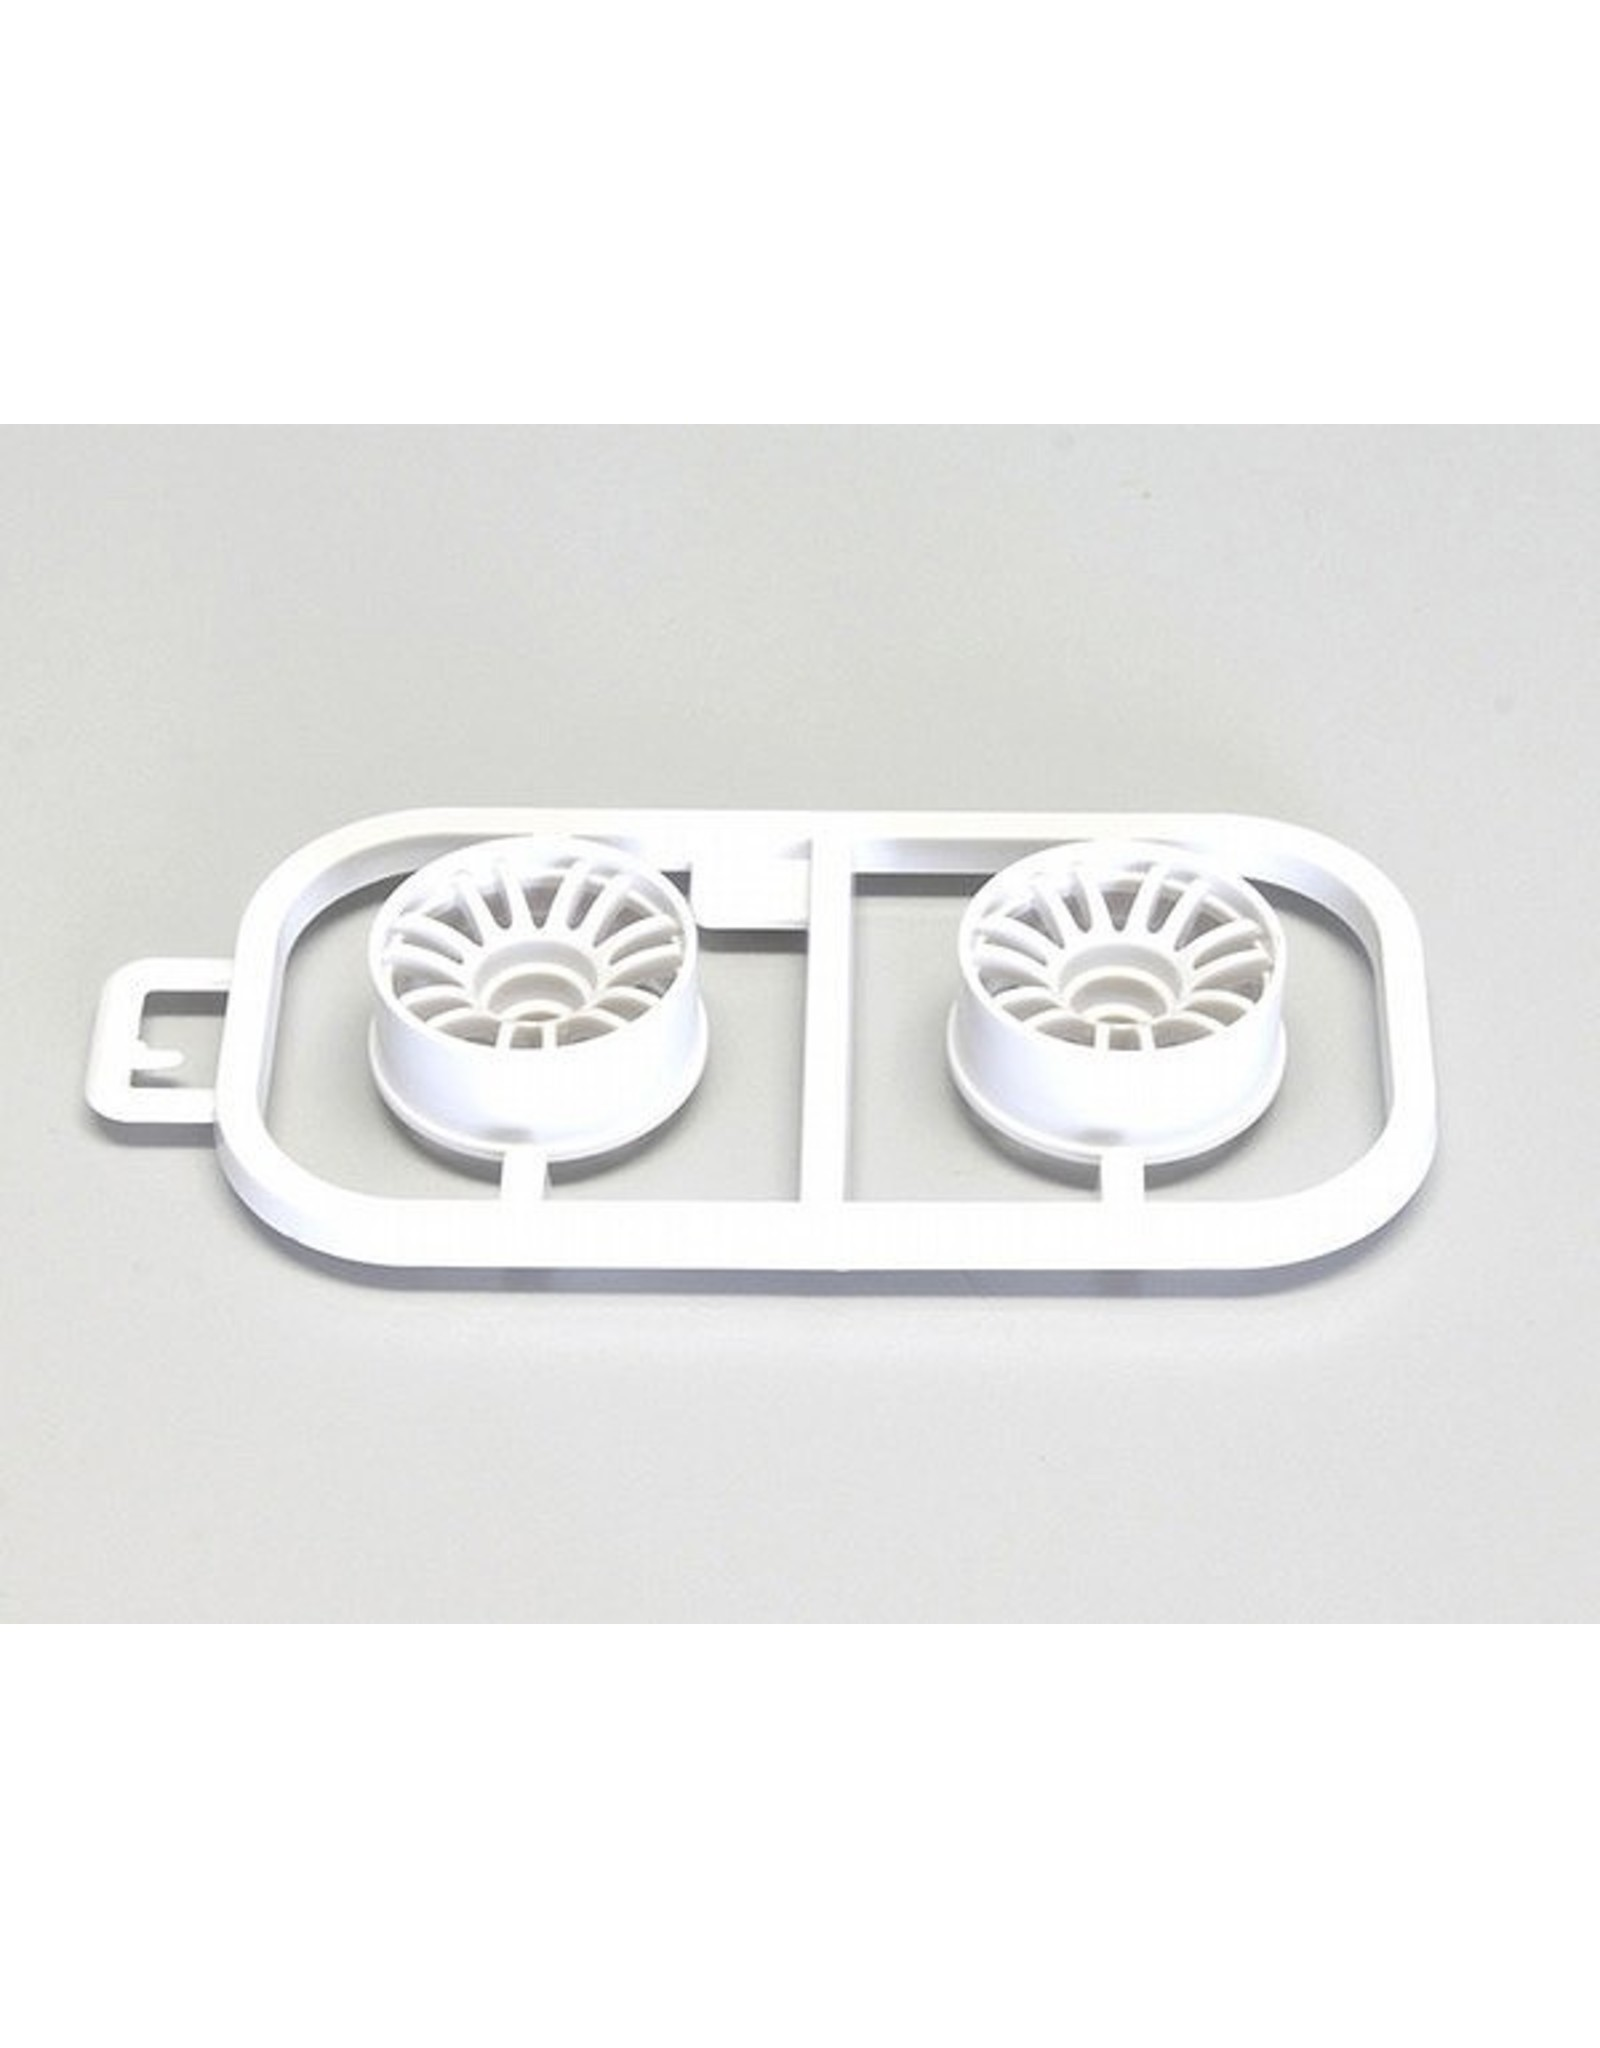 Kyosho Multi Wheel II N/Offset 2.5 (White/RE30/2pcs) (MZH131W-N25)